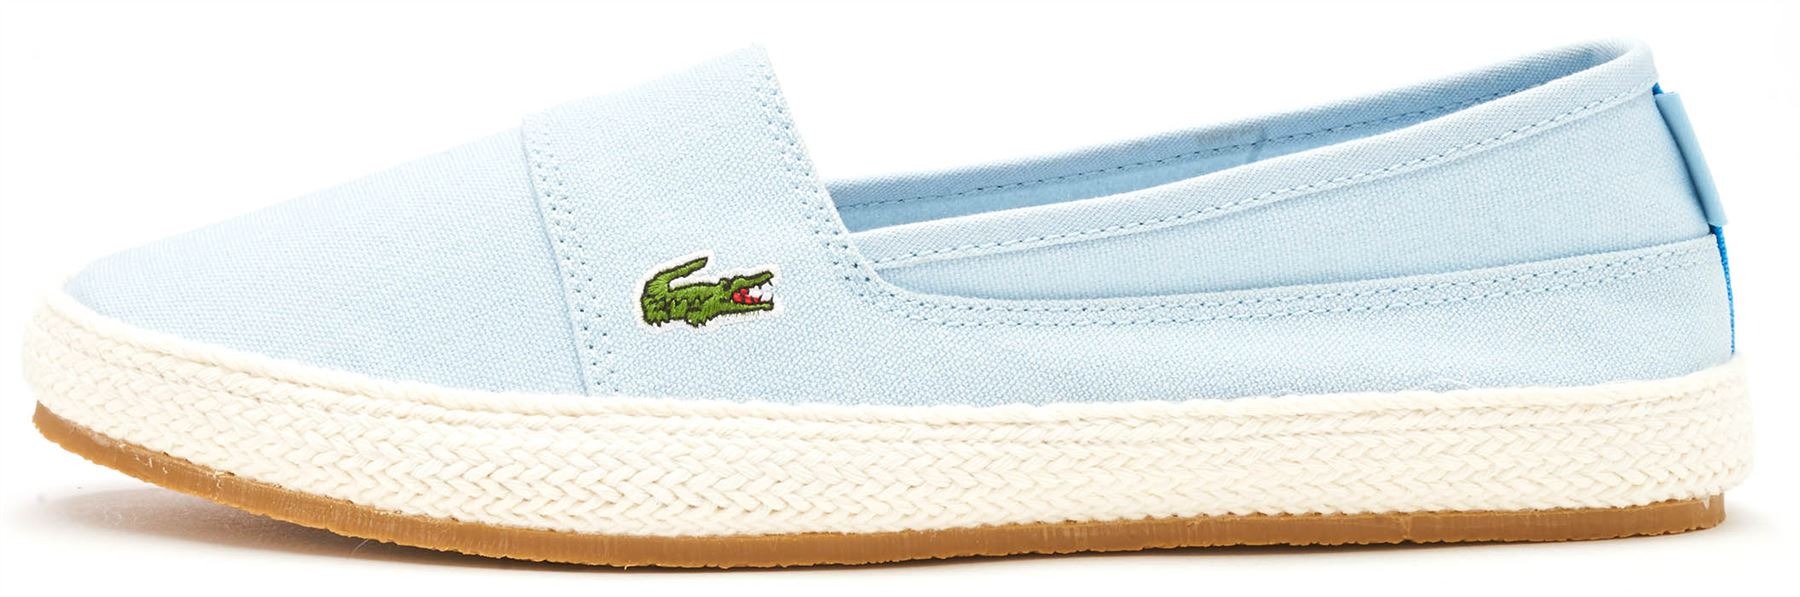 3bce3a3ba Lacoste Marice 218 1 CAW Canvas Women Slip Ons Trainers in Light Blue    White